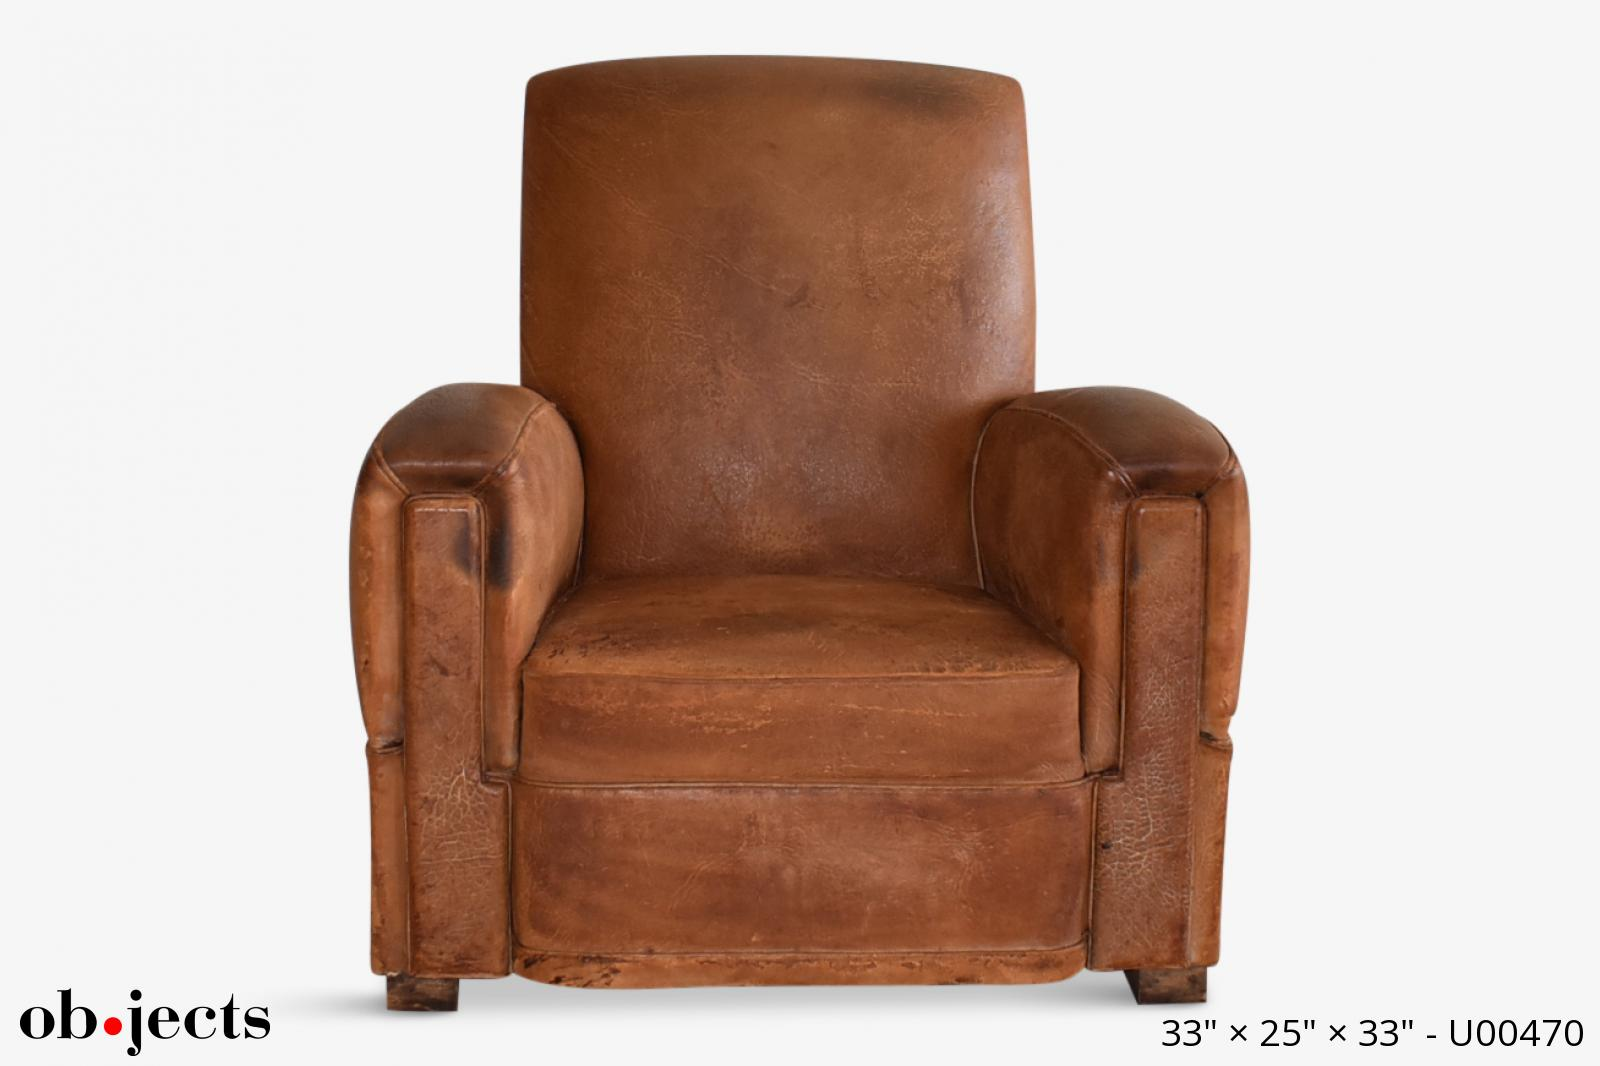 Miraculous Chair Club Vintage Cognac Distressed Leather Objects Camellatalisay Diy Chair Ideas Camellatalisaycom